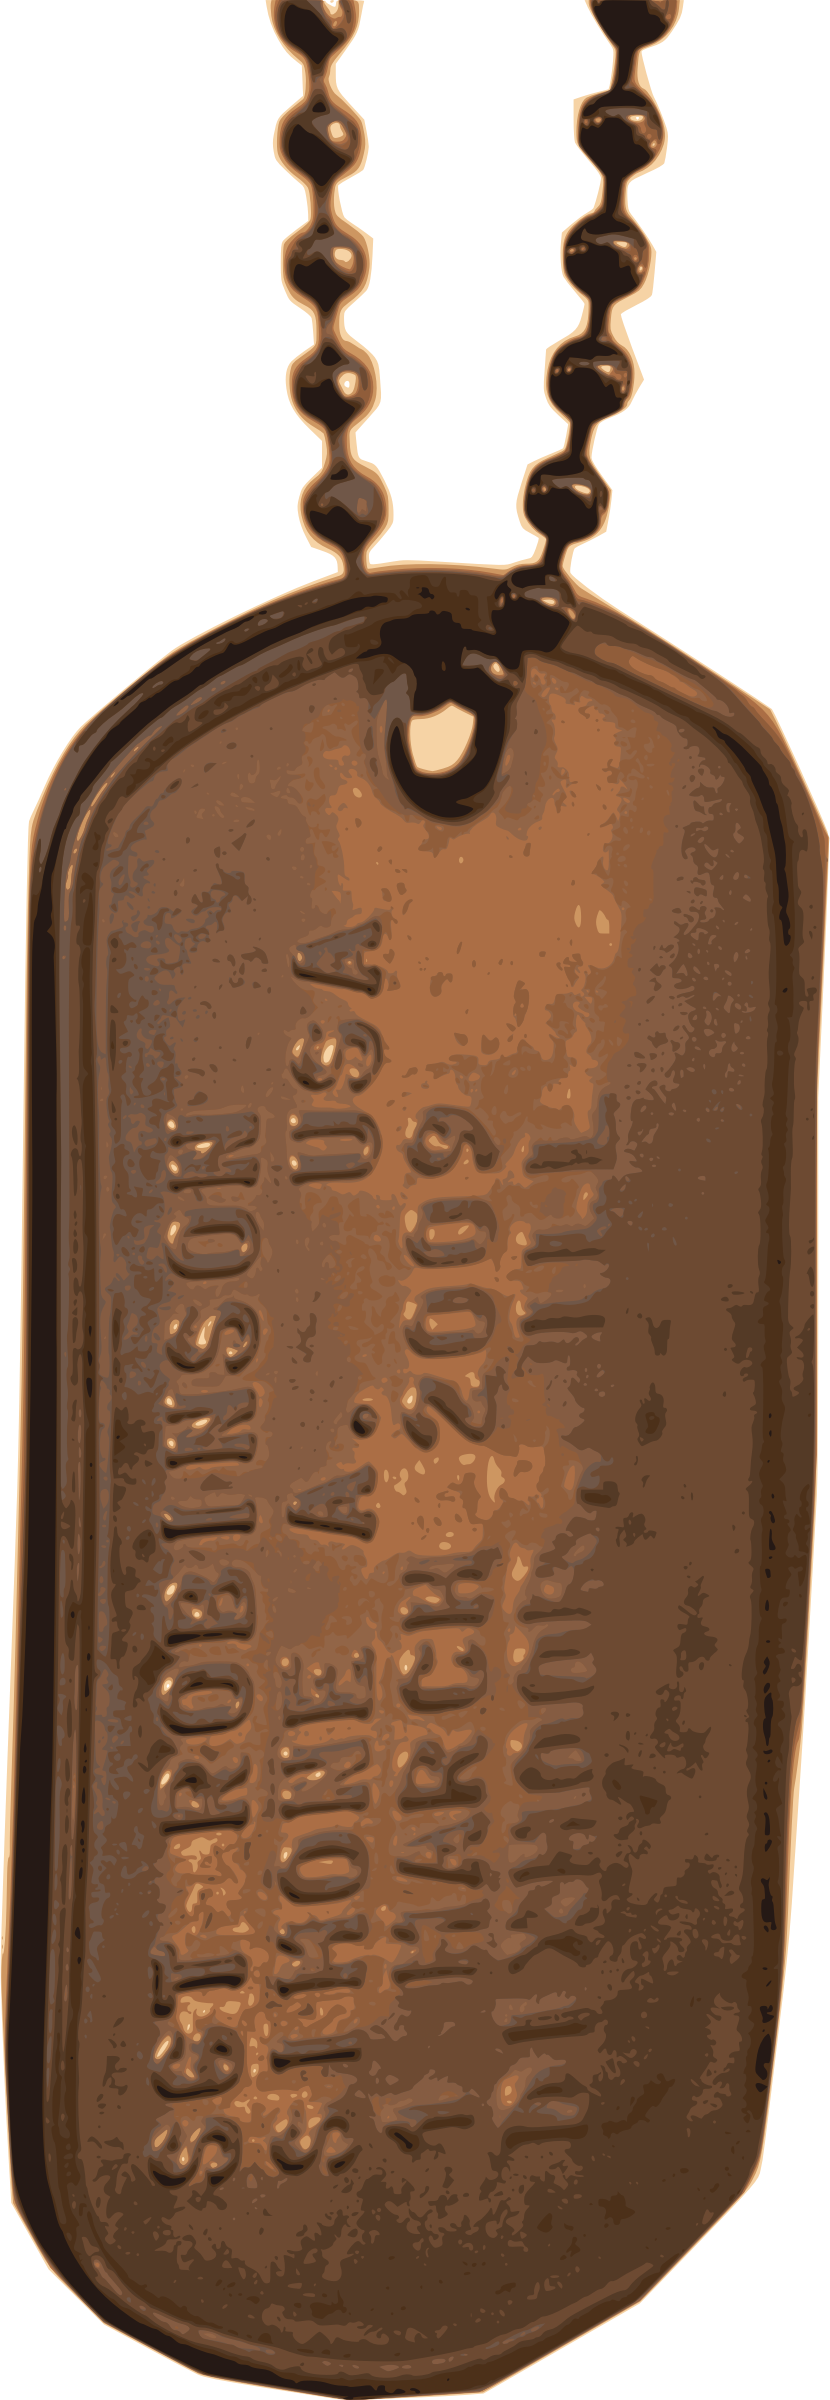 Dog Tags by j4p4n